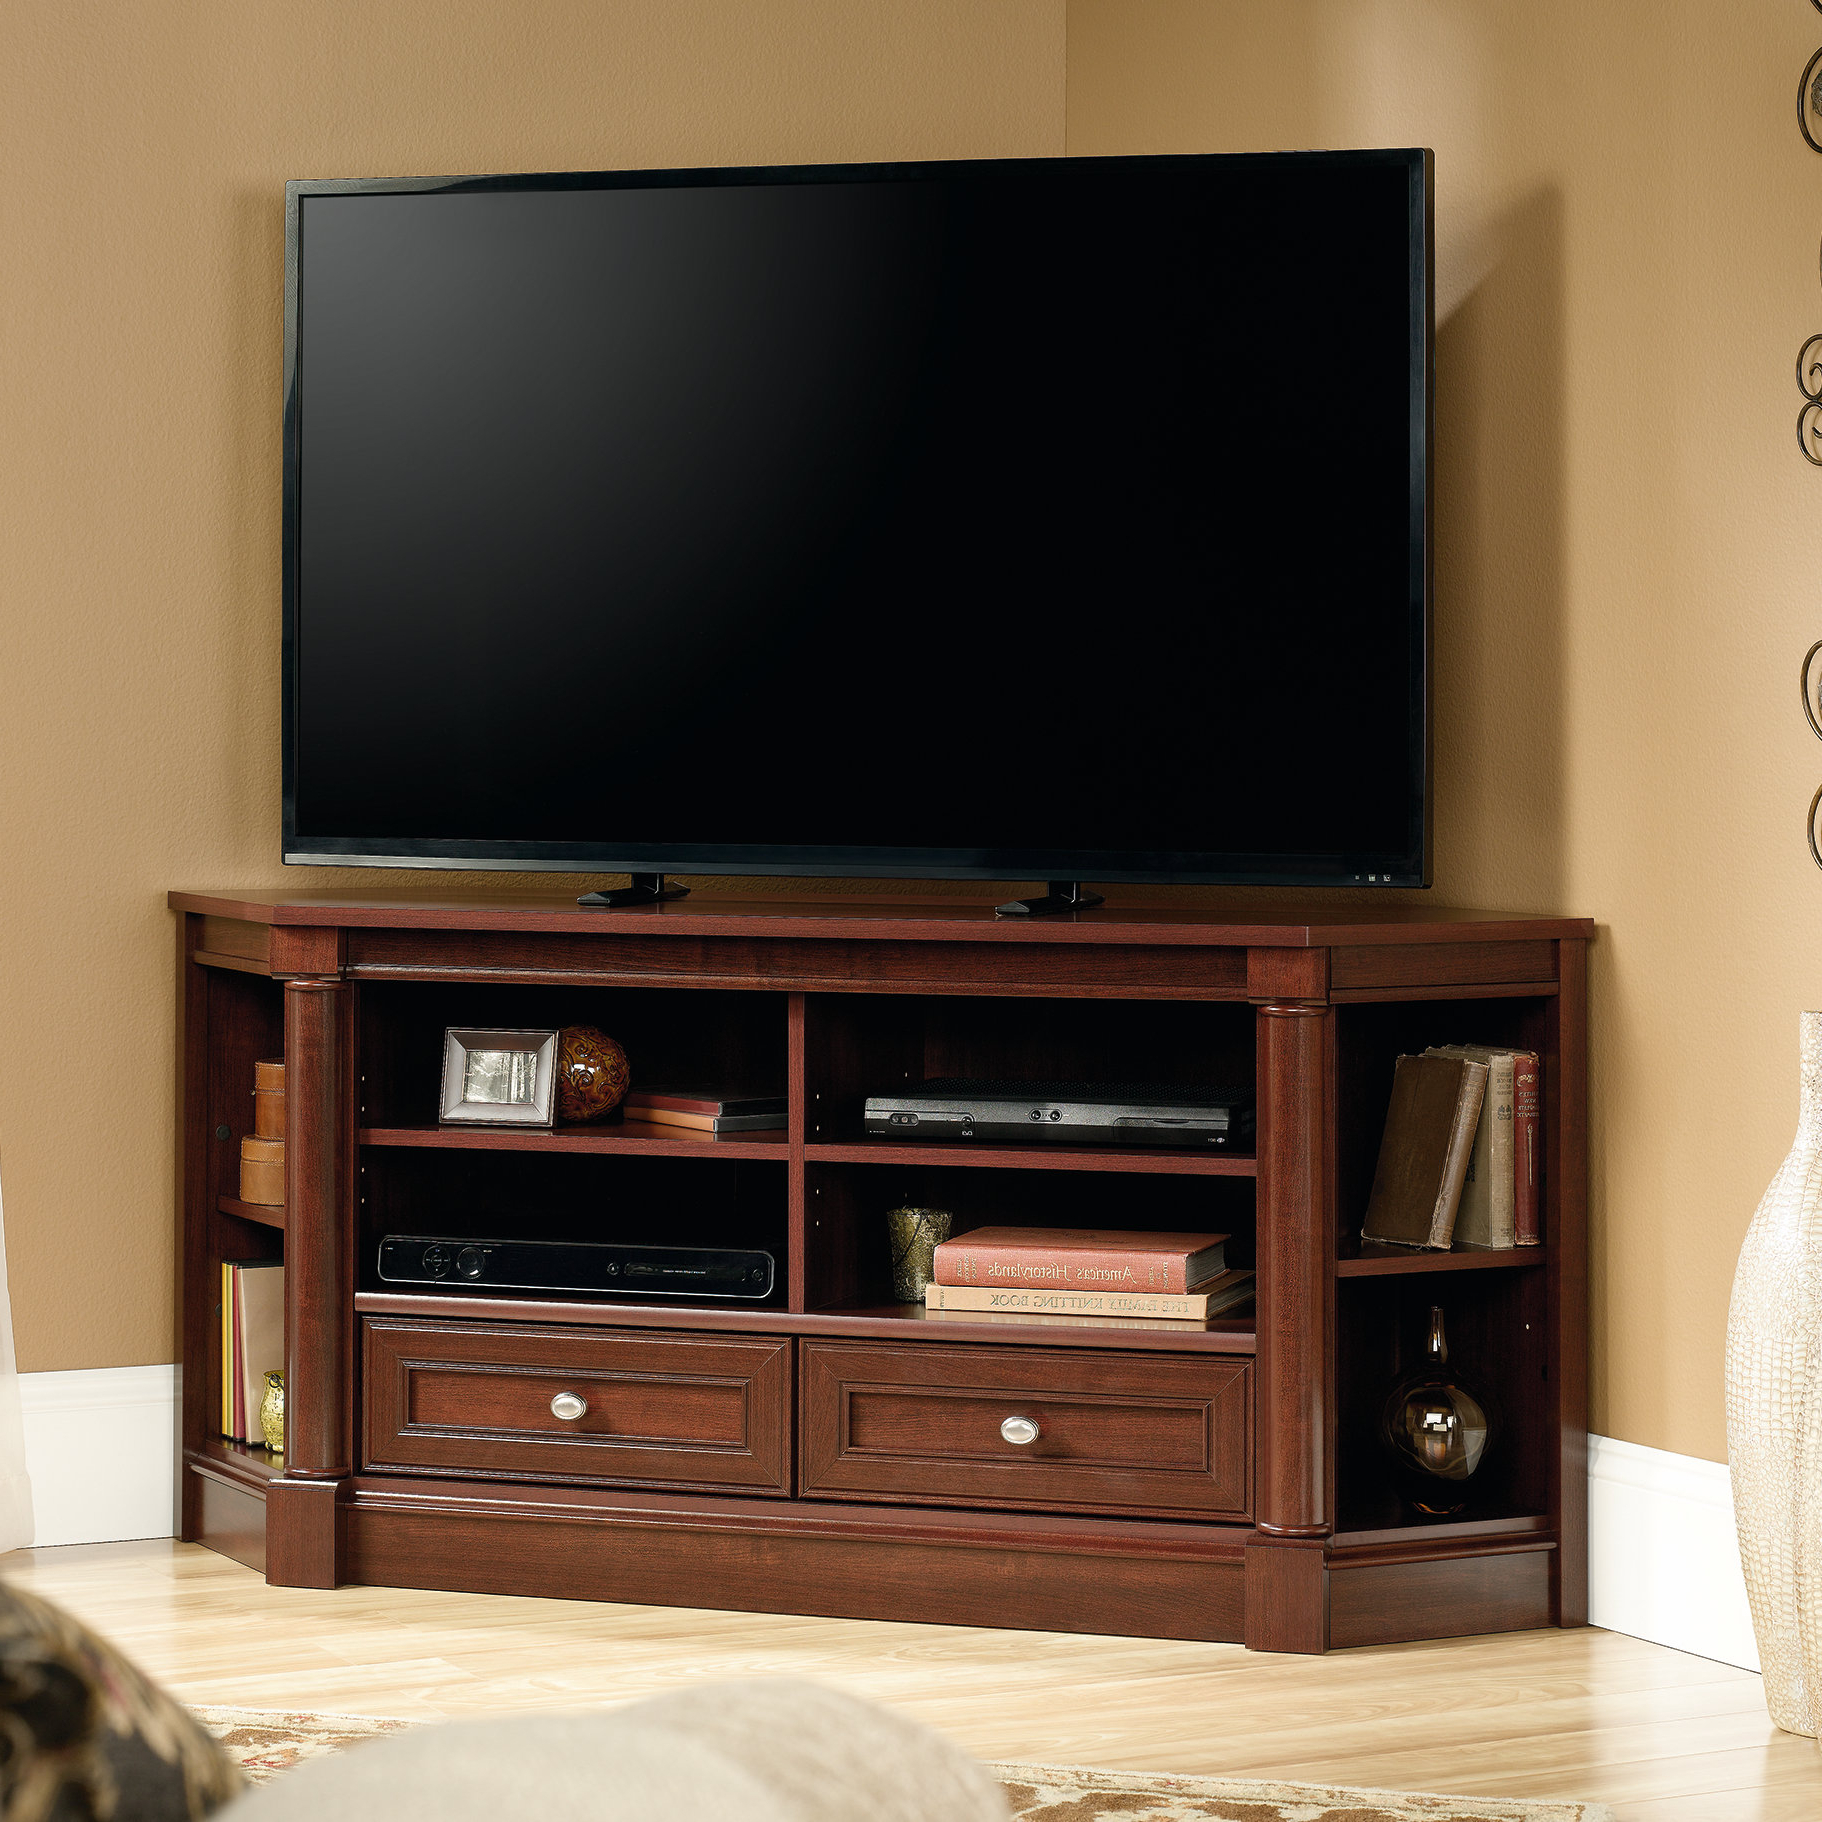 Latest Corner Tv Stands For 55 Inch Tv With Regard To 55 In Corner Tv Stand (Gallery 5 of 20)